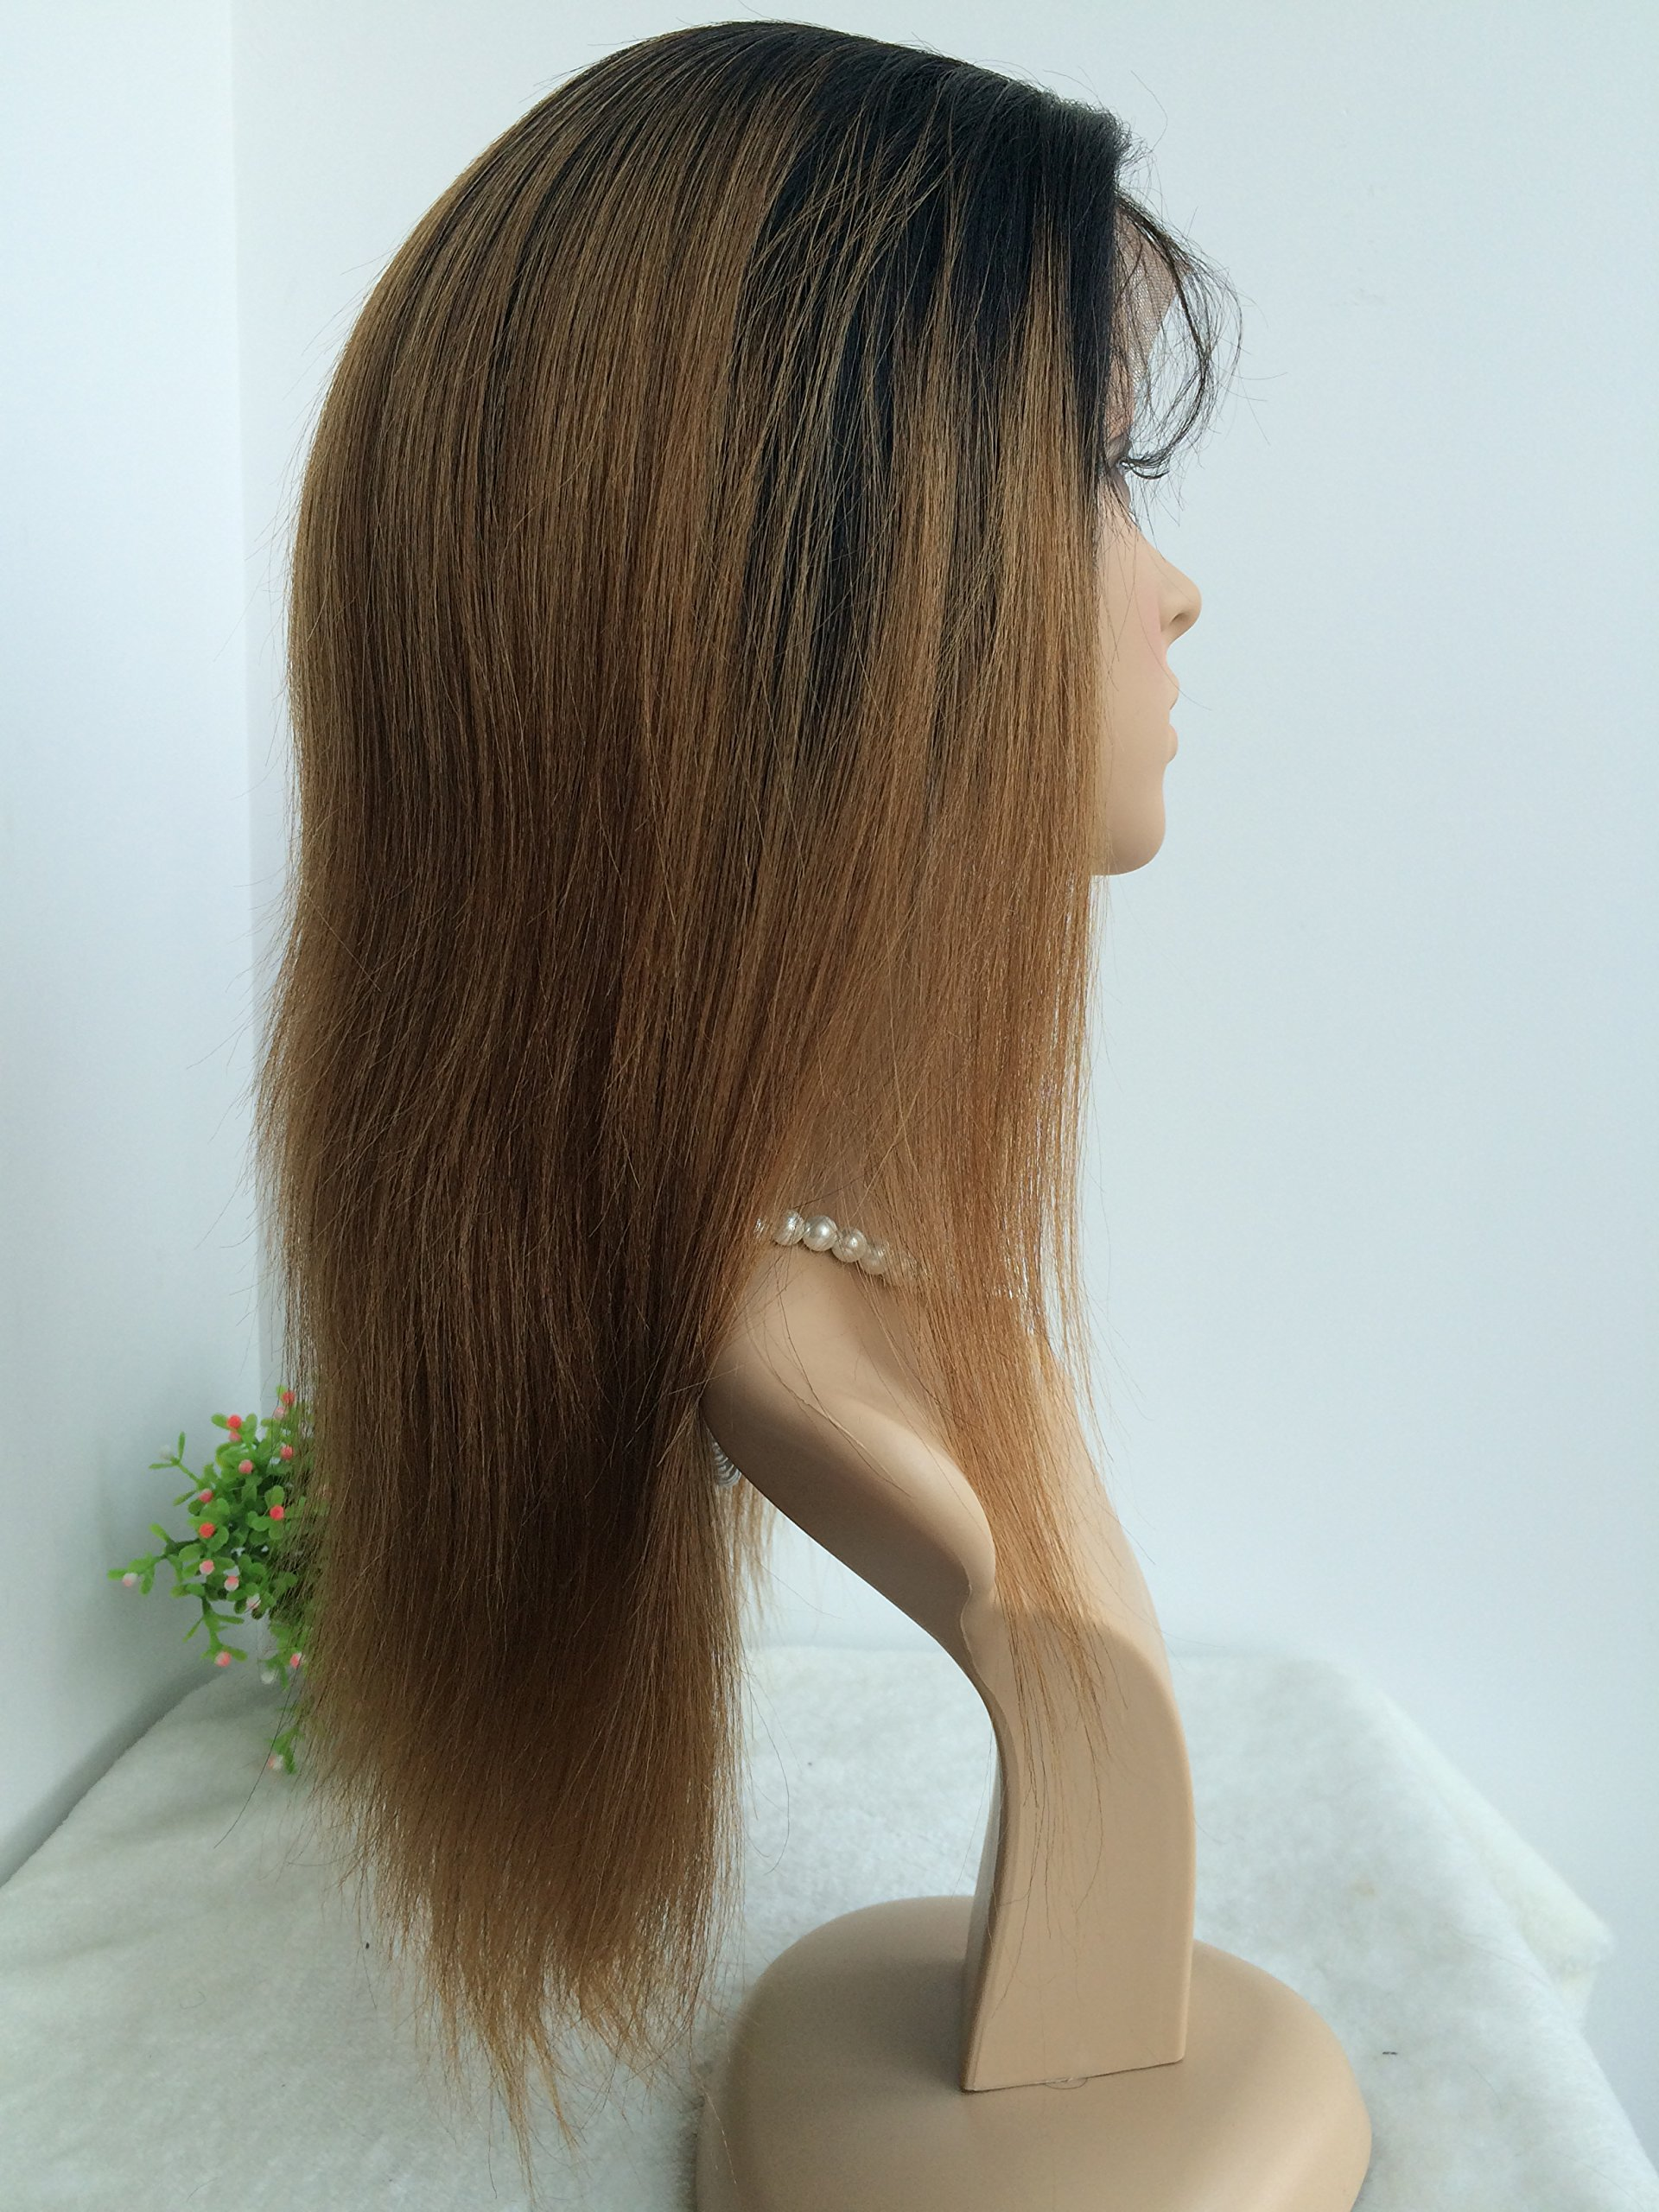 CHINESE VIRGIN HAIR,14 INCH,LIGHT YAKI FULL LACE WIGS SILK TOP BLEACHED KNOTS by April silk top wigs (Image #3)